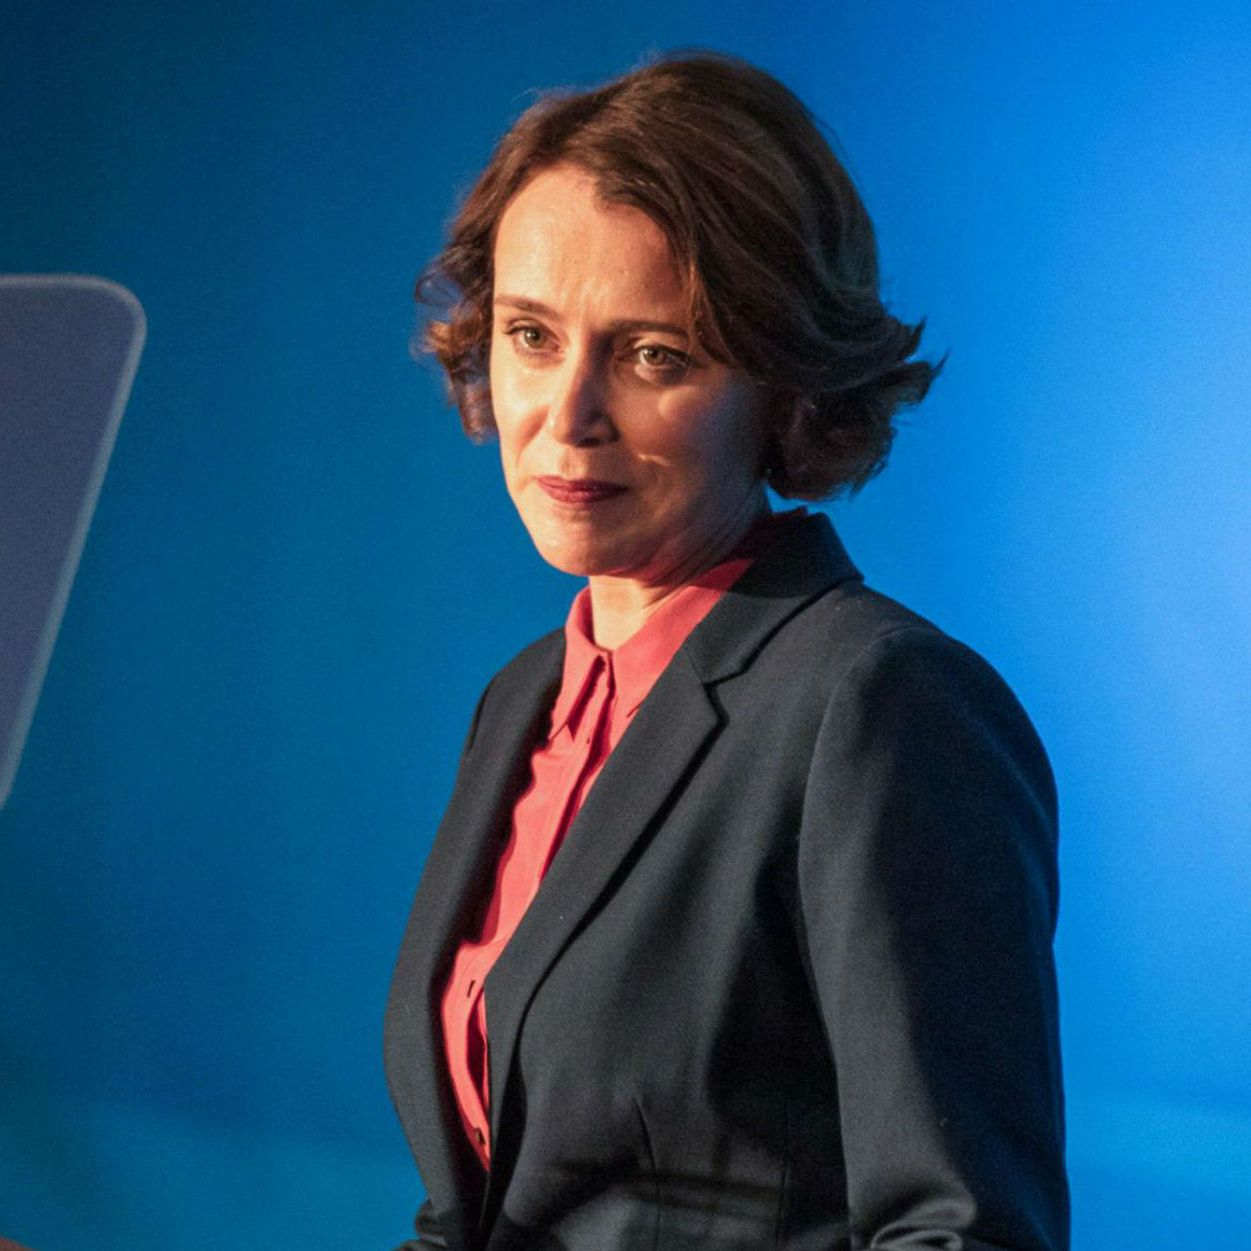 Bodyguard's Keeley Hawes opens up about depression and her chemistry with co-star Richard Madden